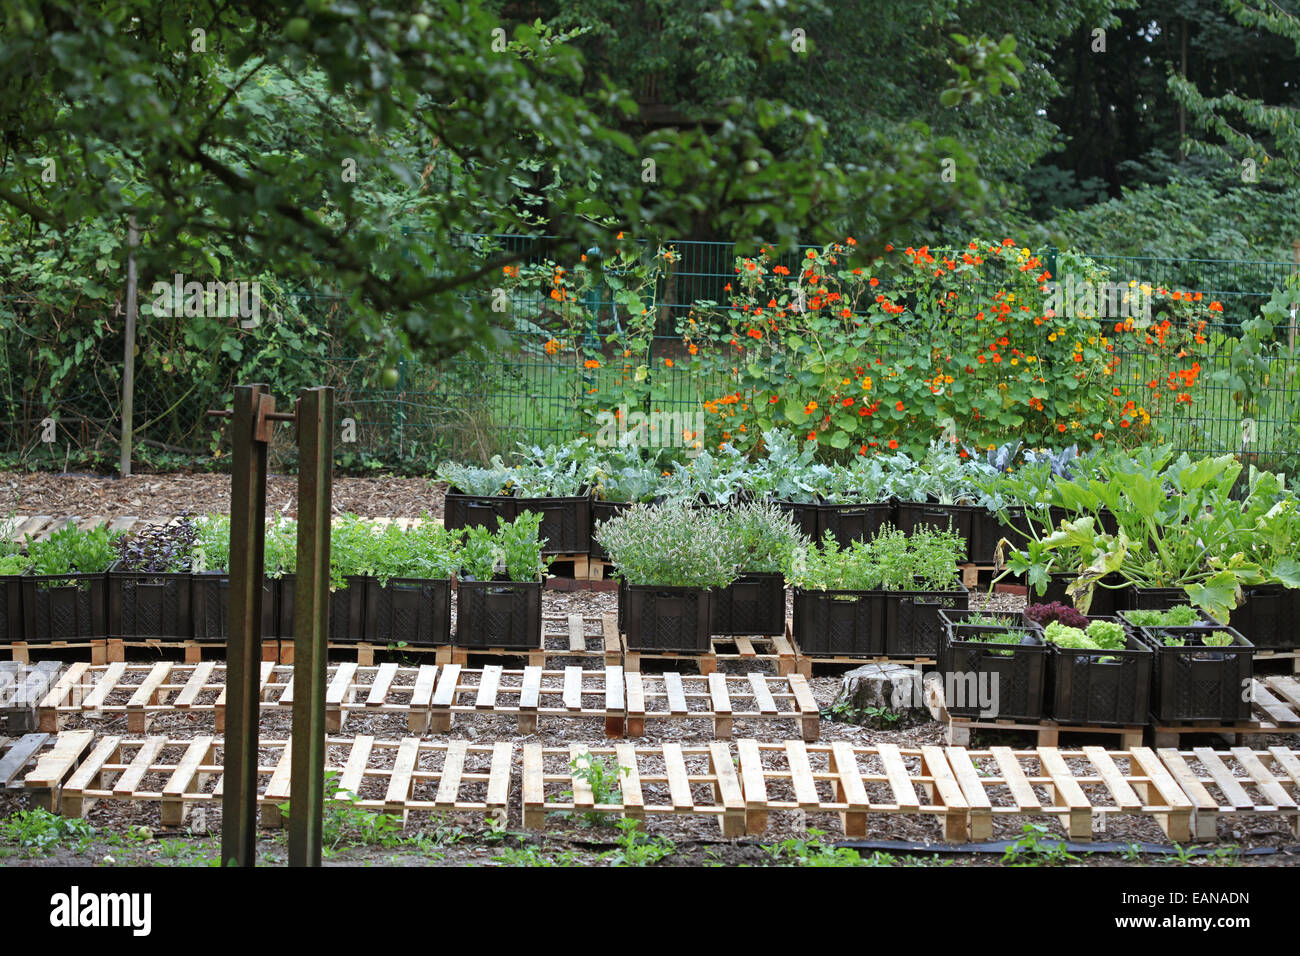 Vegetables farmed in plant boxes in an urban gardening project in Germany - Stock Image